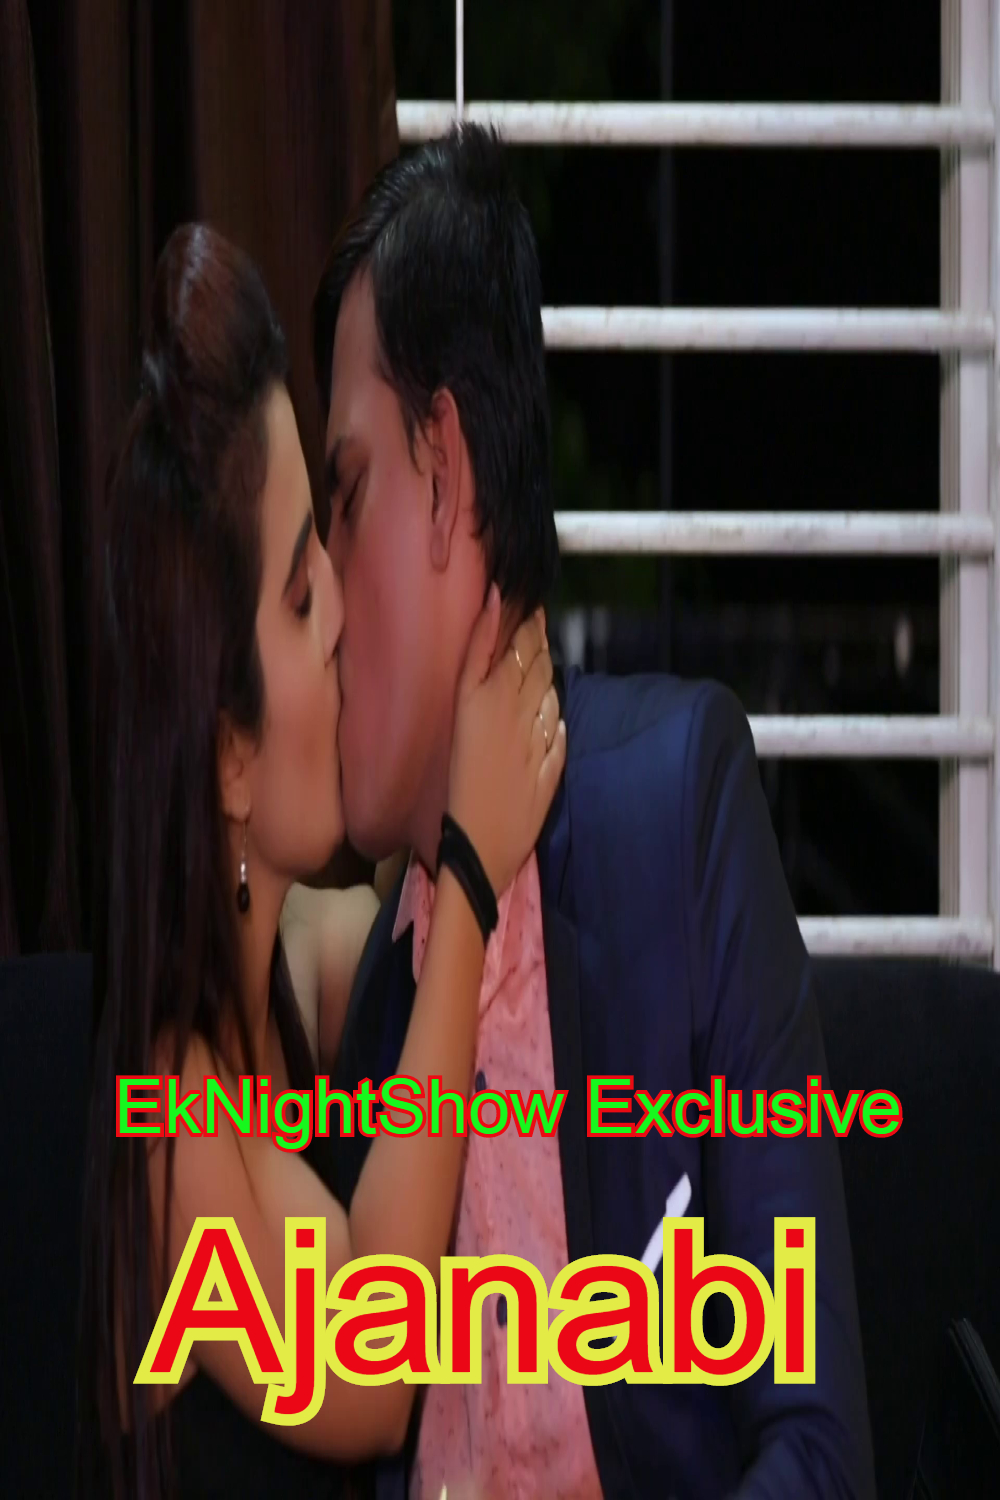 Ajanabi 2020 EknightShow Originals Hindi Short Film 720p HDRip 191MB Download